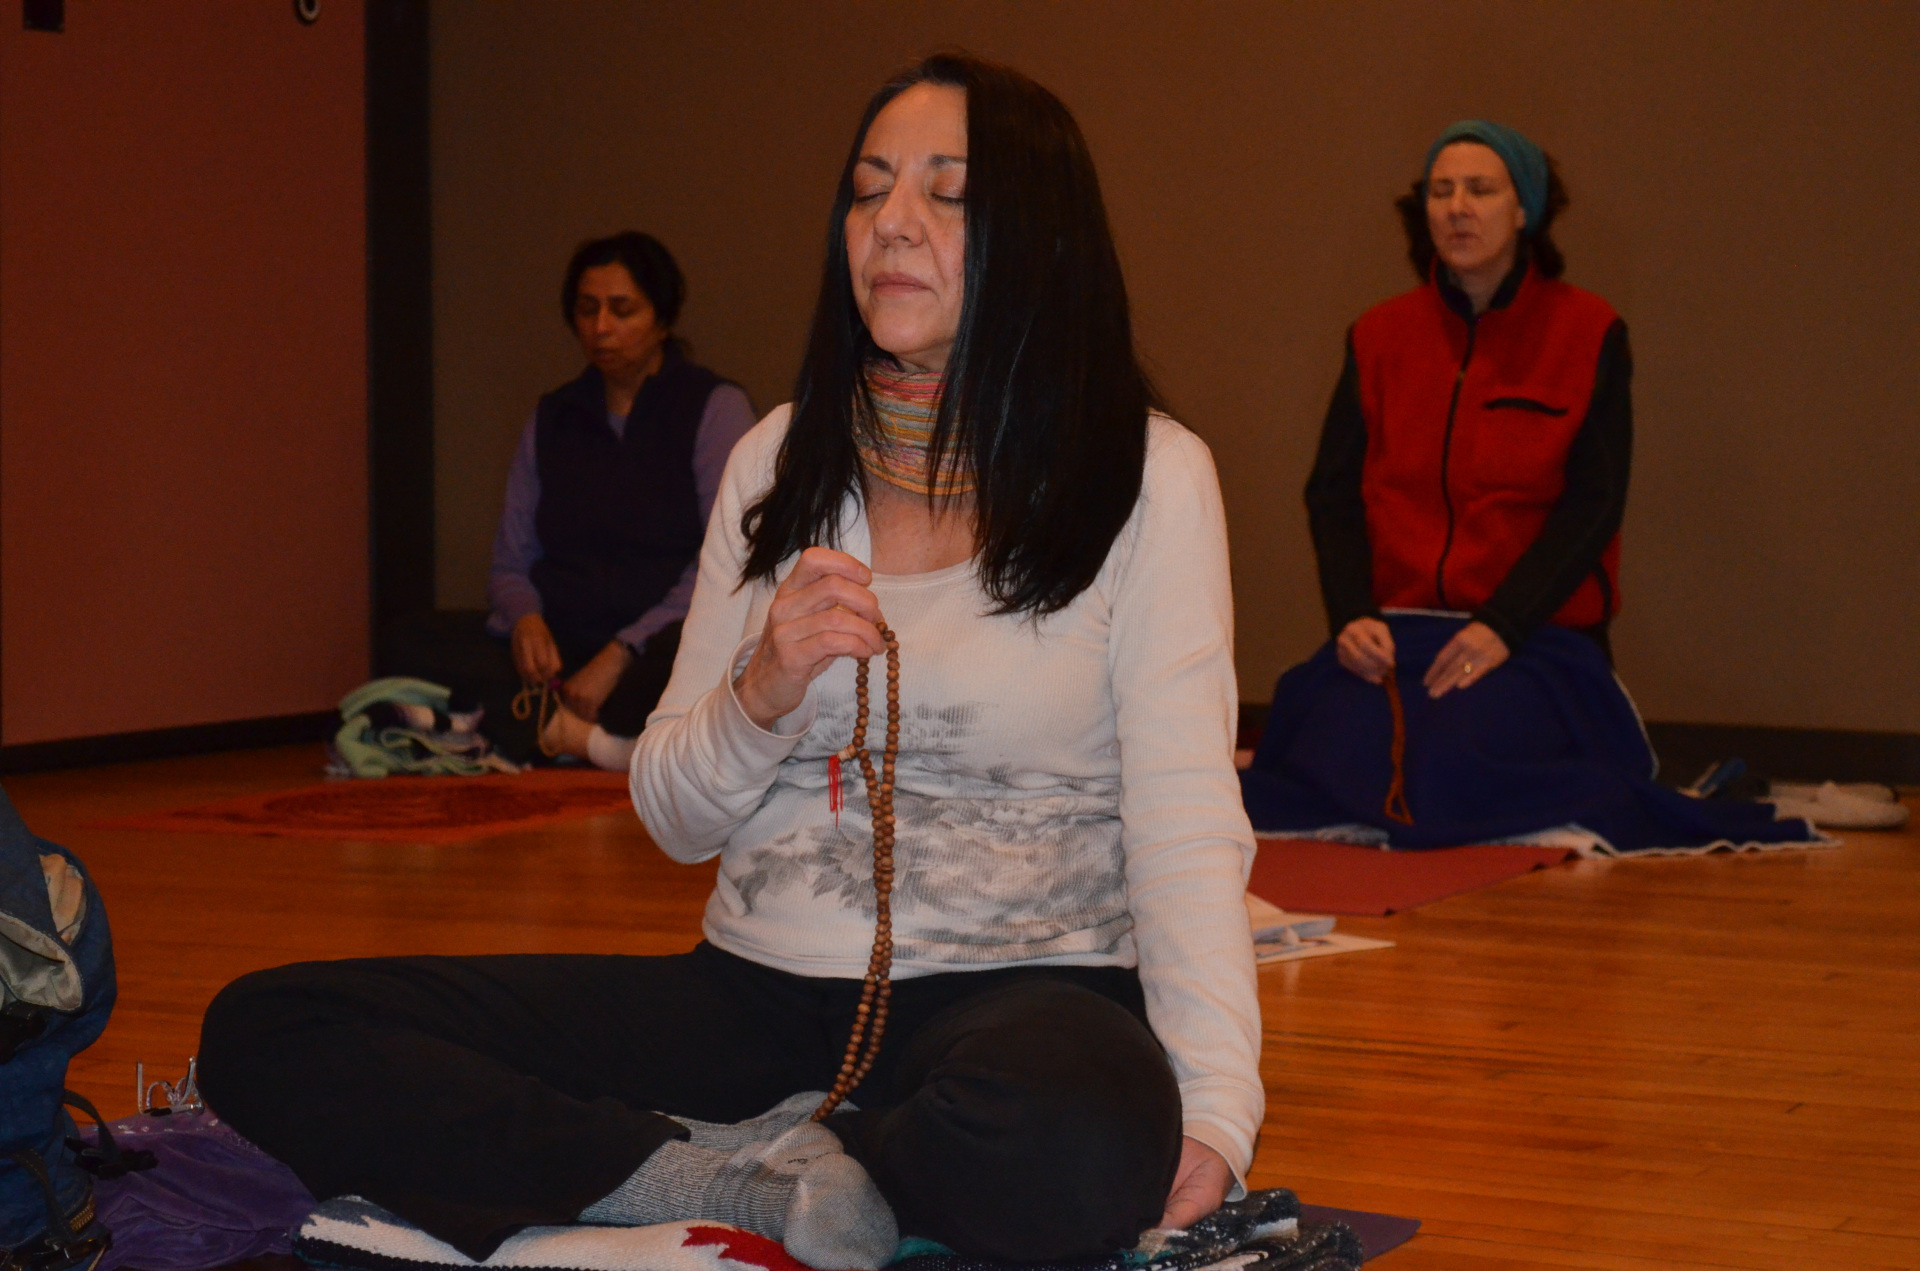 YANA student meditating with mala